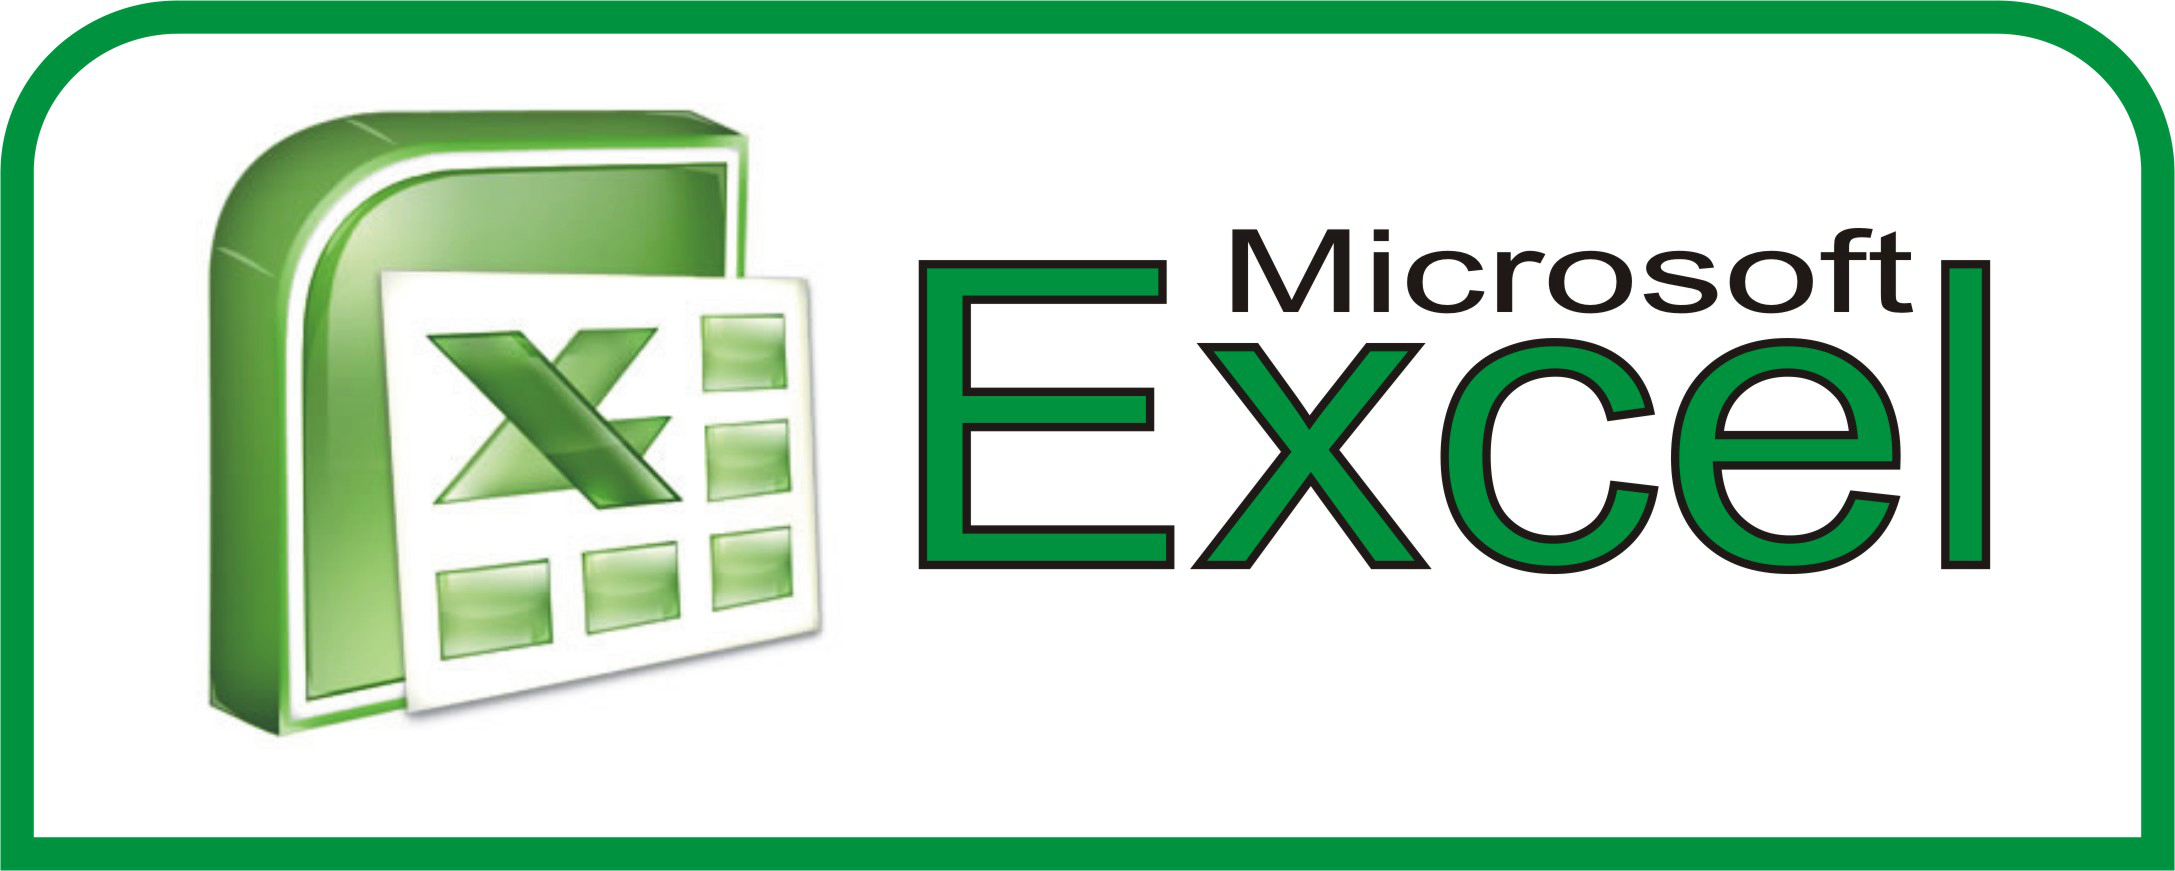 Ediblewildsus  Picturesque  Excel Shortcuts You Probably Didnt Know About  Techdissected With Exciting Add Line To Excel Chart Besides Excel Freezing Furthermore Adding Checkboxes In Excel With Astonishing Graph A Function In Excel Also How To Print Labels From Excel  In Addition Recovering Excel Files And Count Columns In Excel As Well As Index Match Function In Excel Additionally C Excel From Techdissectedcom With Ediblewildsus  Exciting  Excel Shortcuts You Probably Didnt Know About  Techdissected With Astonishing Add Line To Excel Chart Besides Excel Freezing Furthermore Adding Checkboxes In Excel And Picturesque Graph A Function In Excel Also How To Print Labels From Excel  In Addition Recovering Excel Files From Techdissectedcom